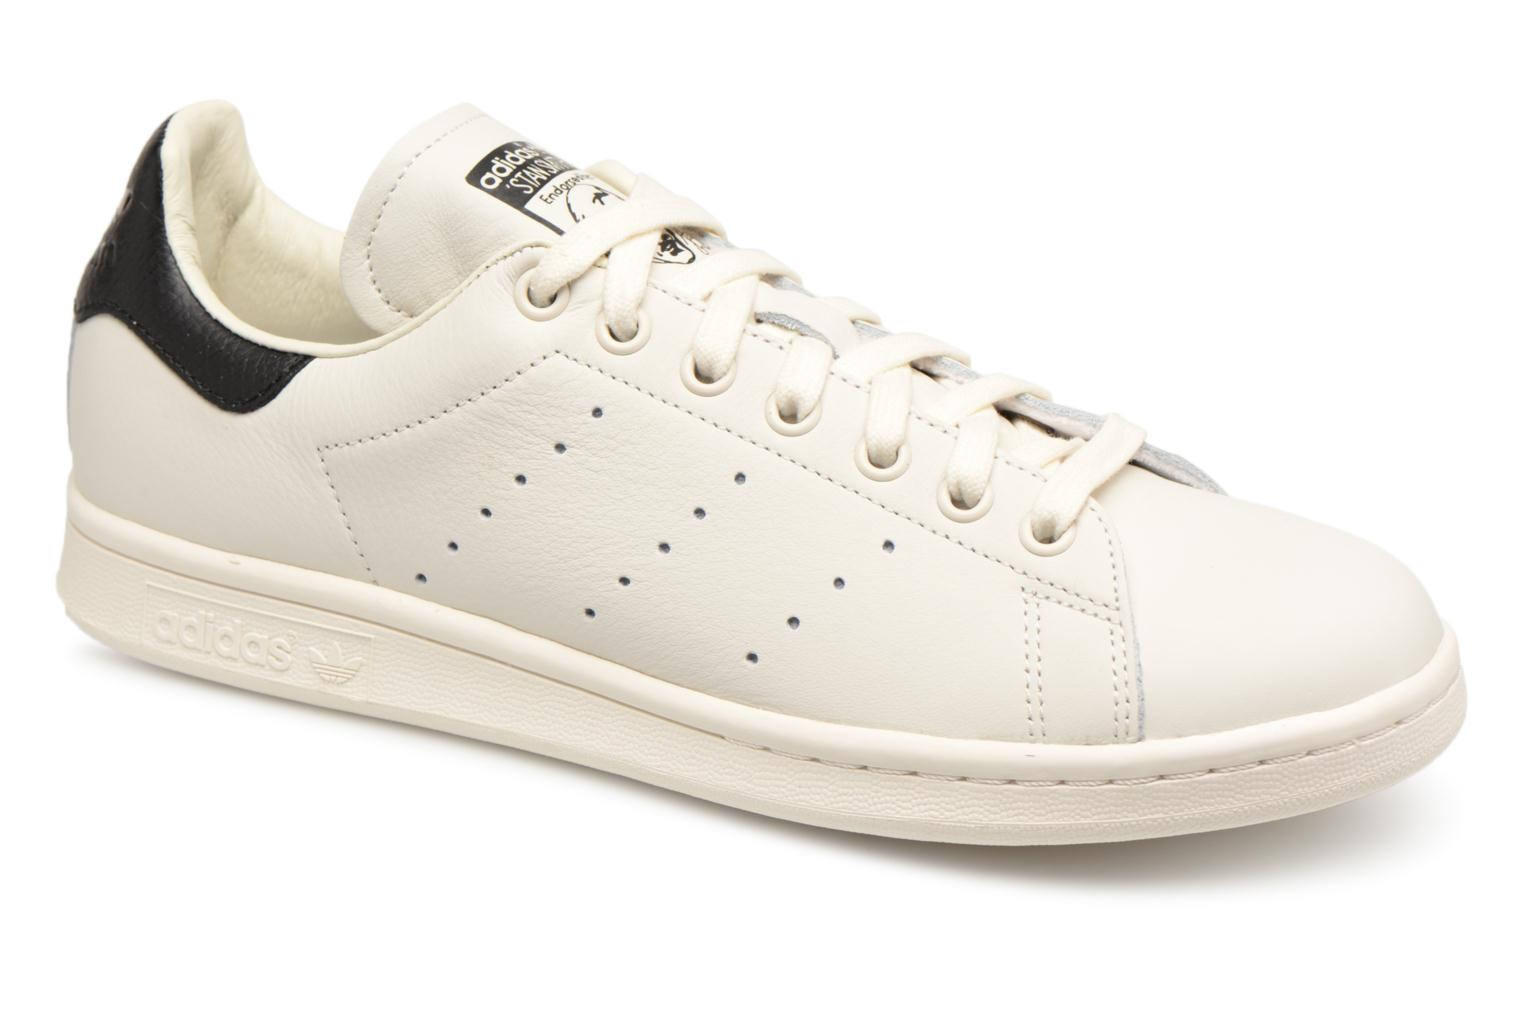 Adidas Originals Stan Smith (Blanc) - Baskets en Más cómodo Dédouanement saisonnier